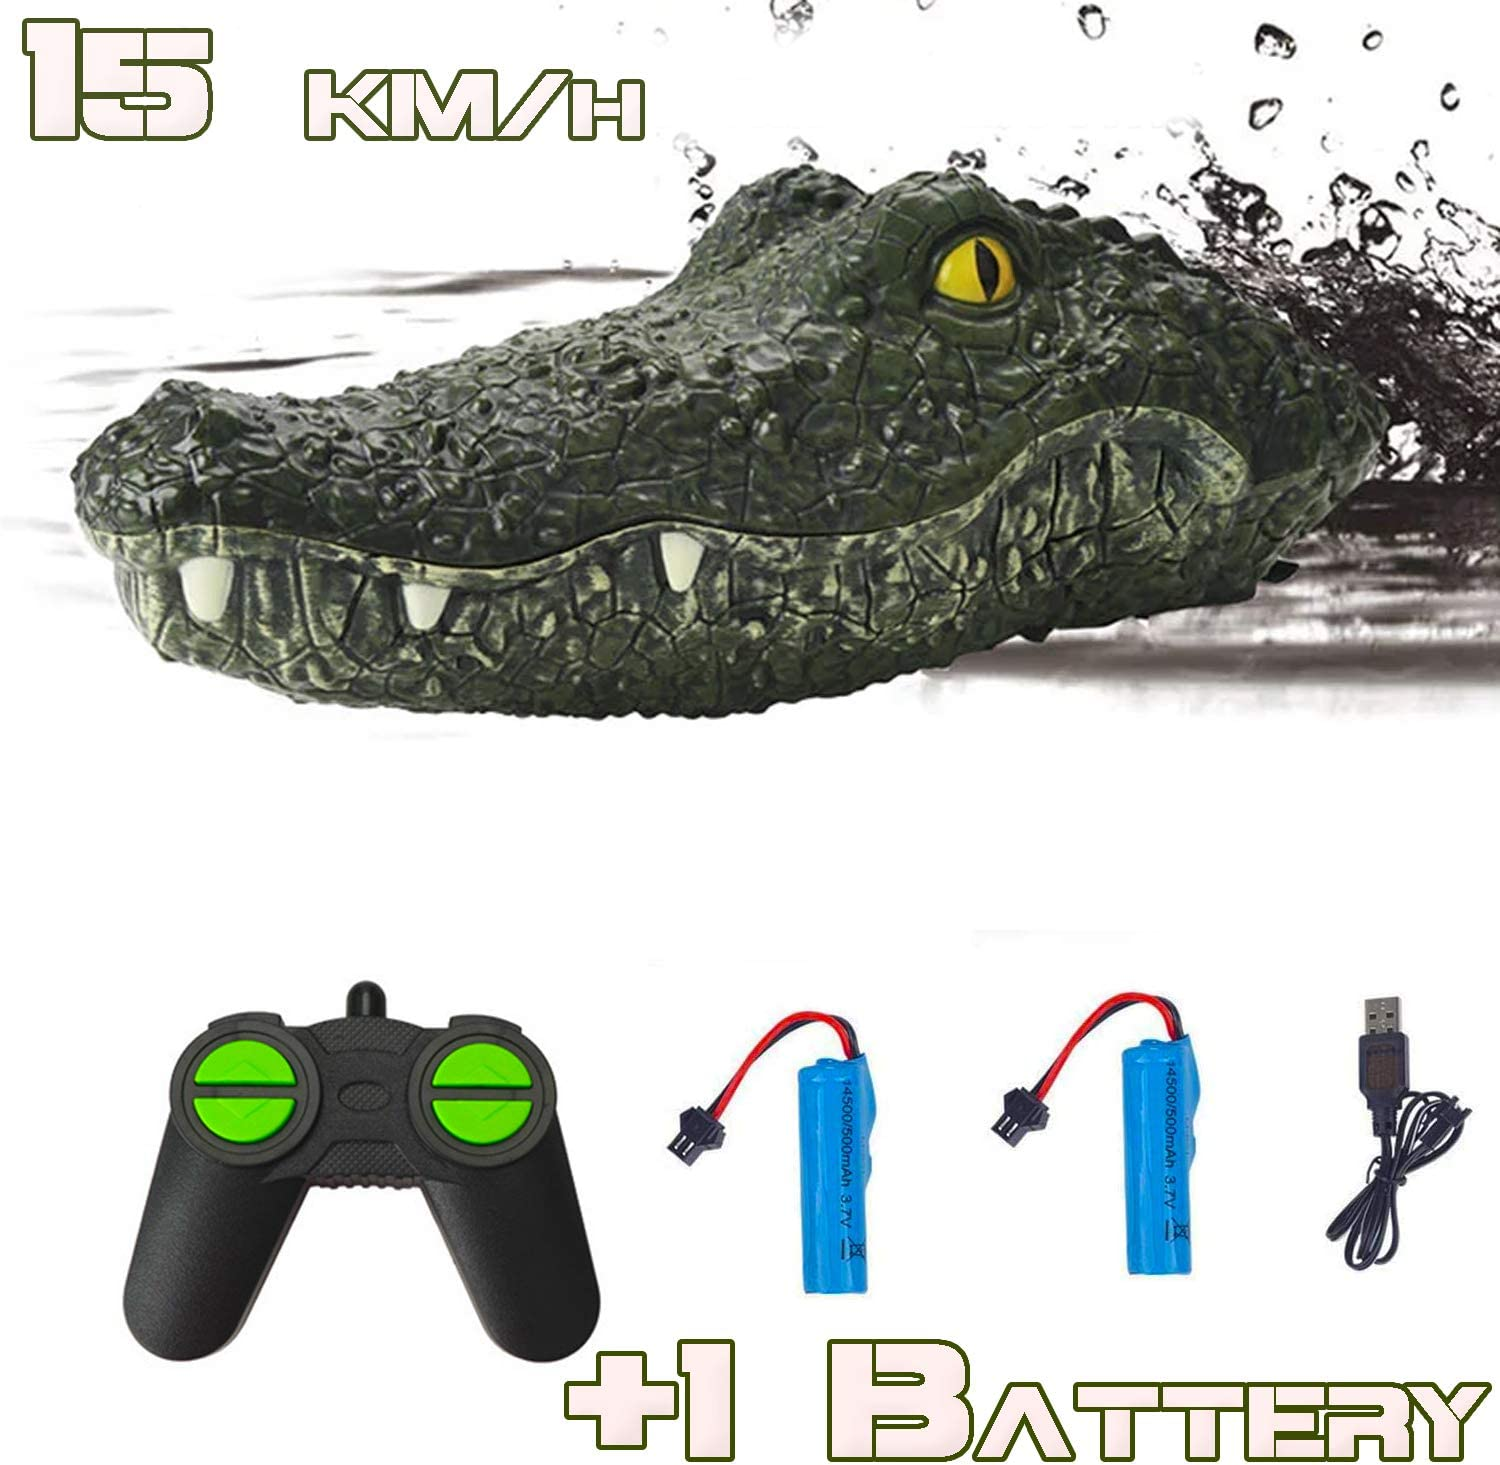 Remote Control Alligator Head Boat - Floating Crocodile Head Remote Control Boats for Pools and Lakes for Kids and Adults - Rc Boats Gift Toys for 10 Year Old Boys and Adults